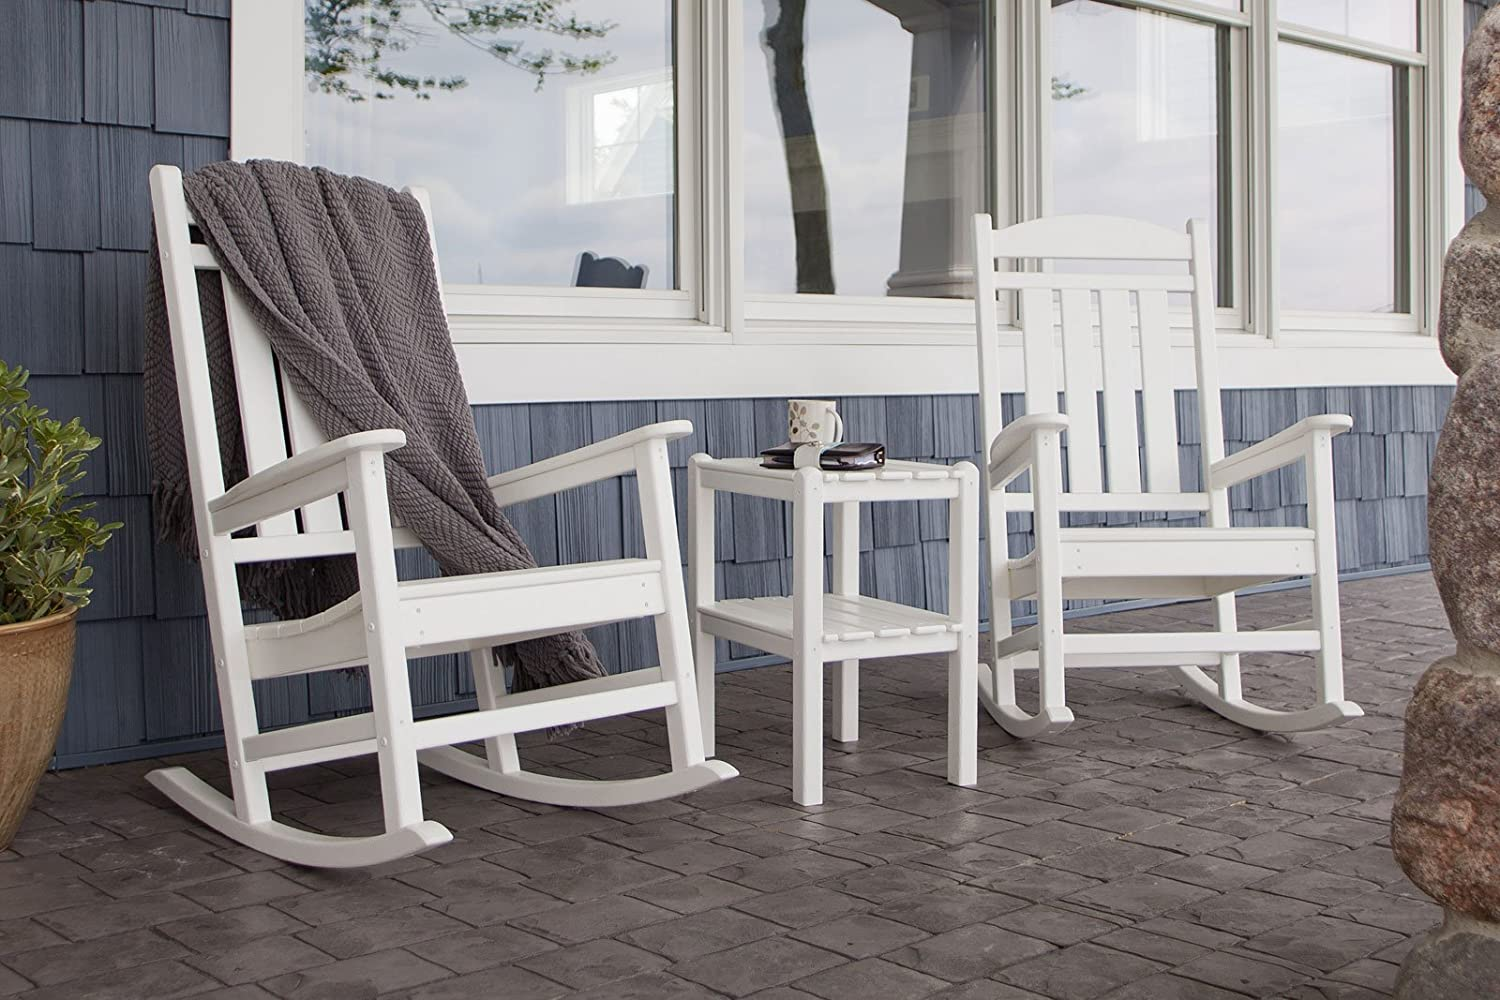 Amazon.com  POLYWOOD PWS138-1-WH Presidential 3-Piece Rocker Chair Set White  Patio Rocking Chairs  Garden u0026 Outdoor & Amazon.com : POLYWOOD PWS138-1-WH Presidential 3-Piece Rocker Chair ...